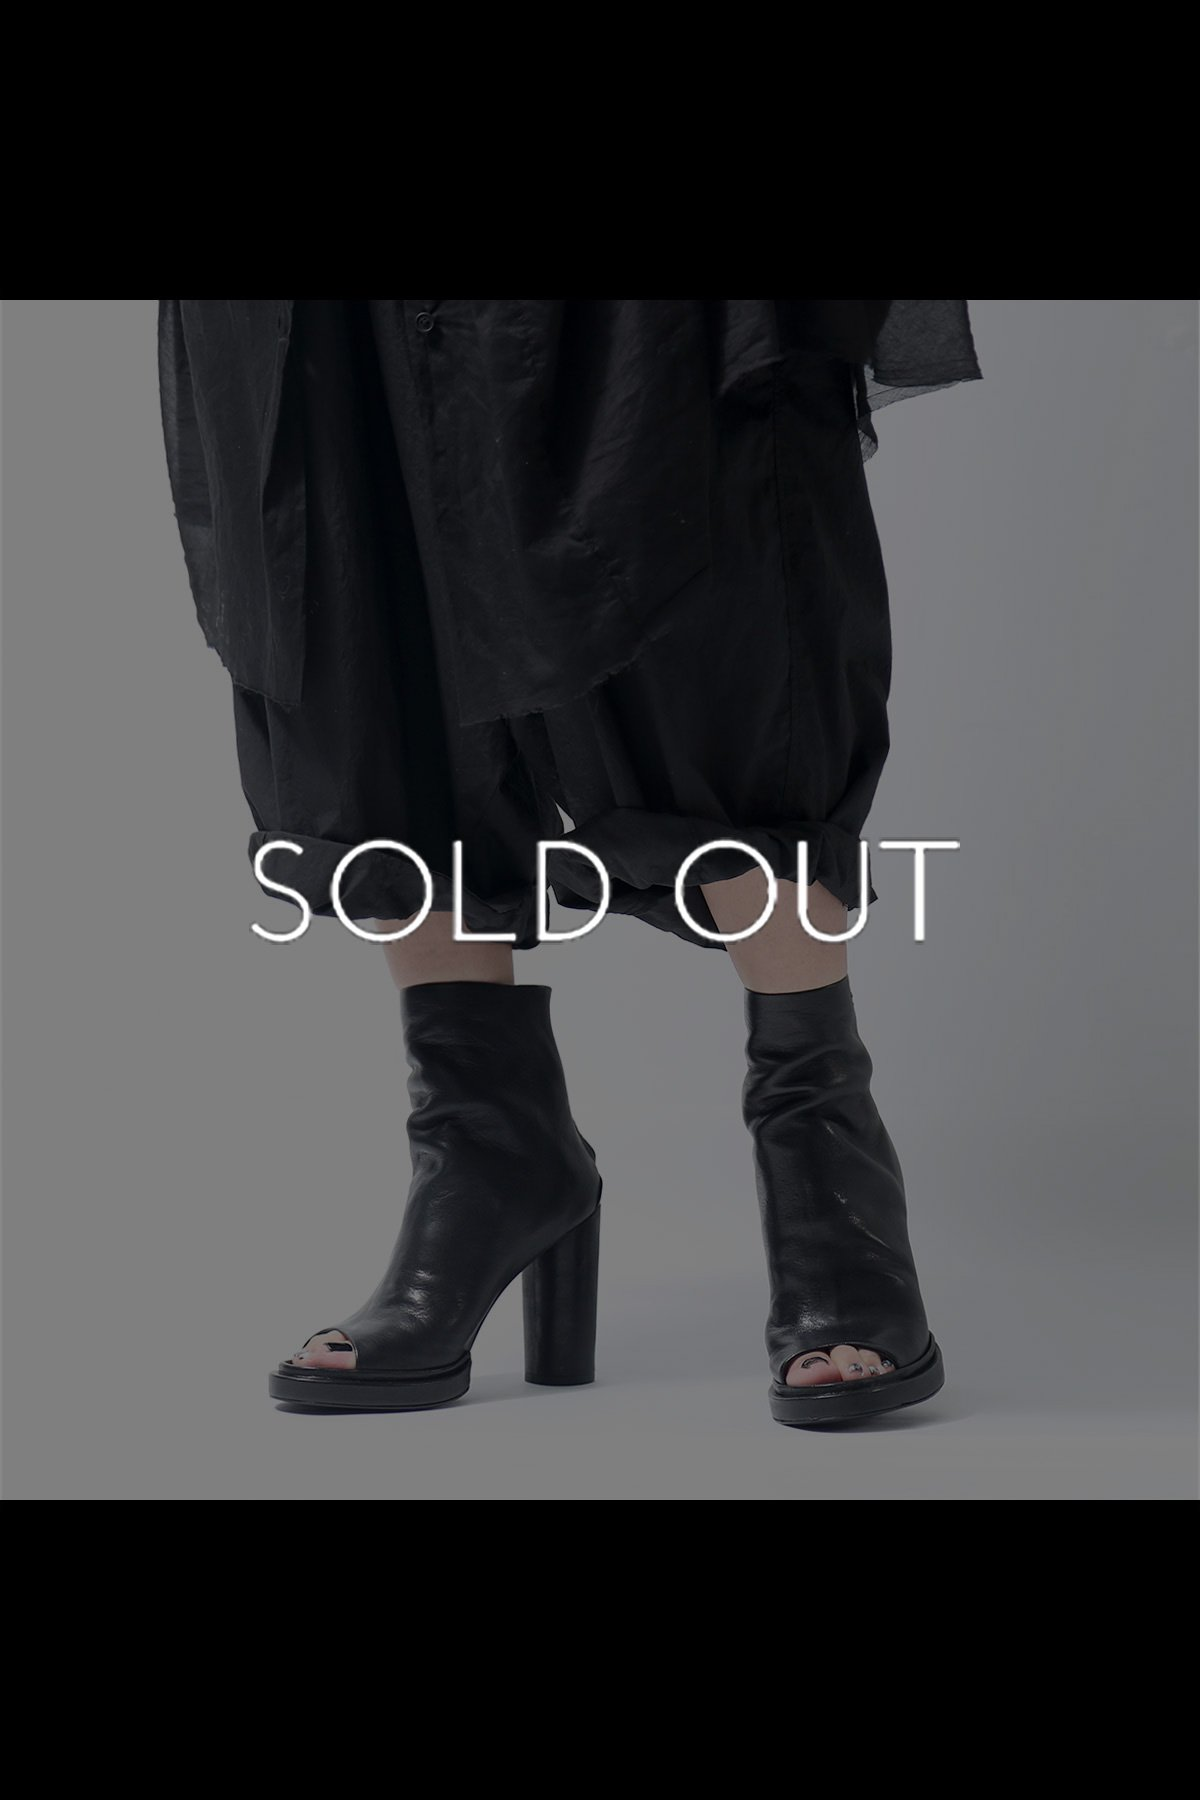 <img class='new_mark_img1' src='https://img.shop-pro.jp/img/new/icons8.gif' style='border:none;display:inline;margin:0px;padding:0px;width:auto;' />LEATHER ANKLE OPEN TOE BOOTS TLC2263_BLACK